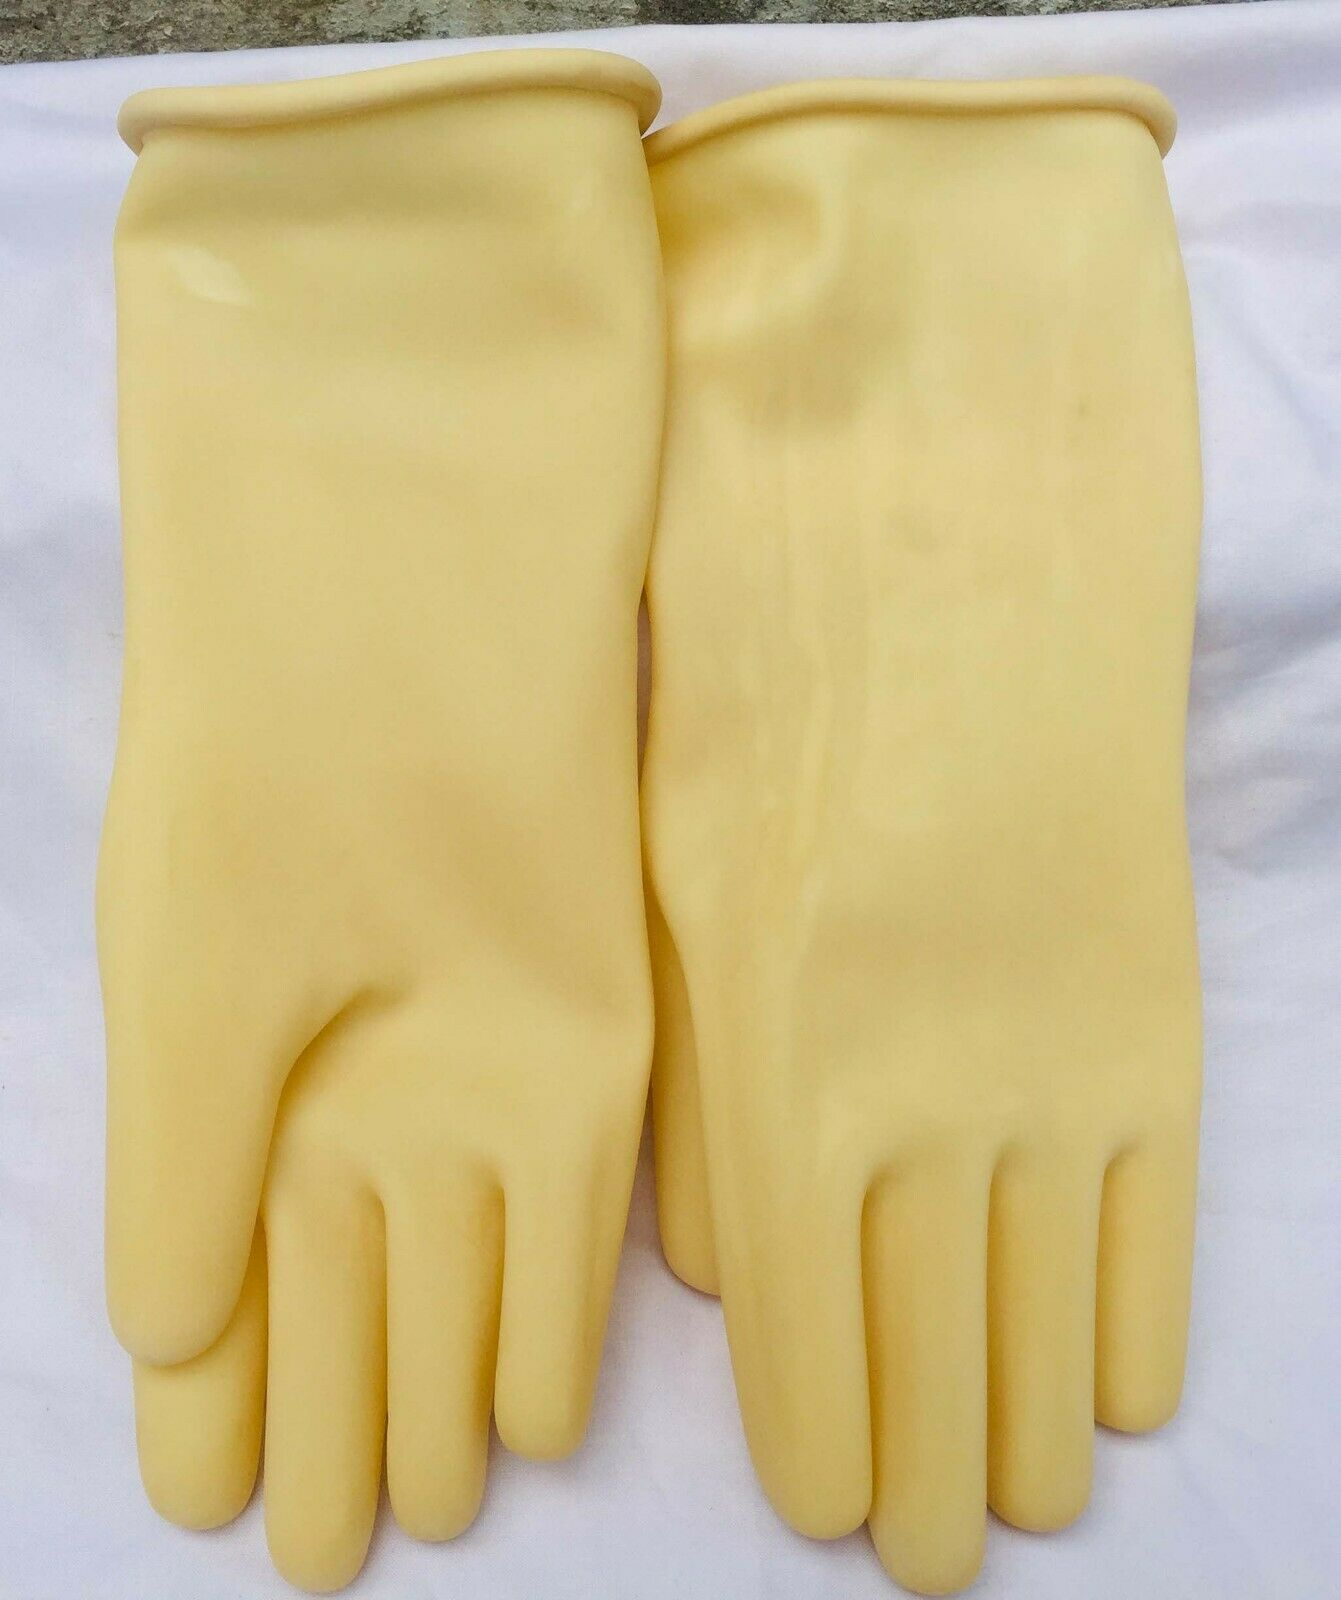 1 Pair Nylon Work Gloves Working Protective Gloves 12 Inches